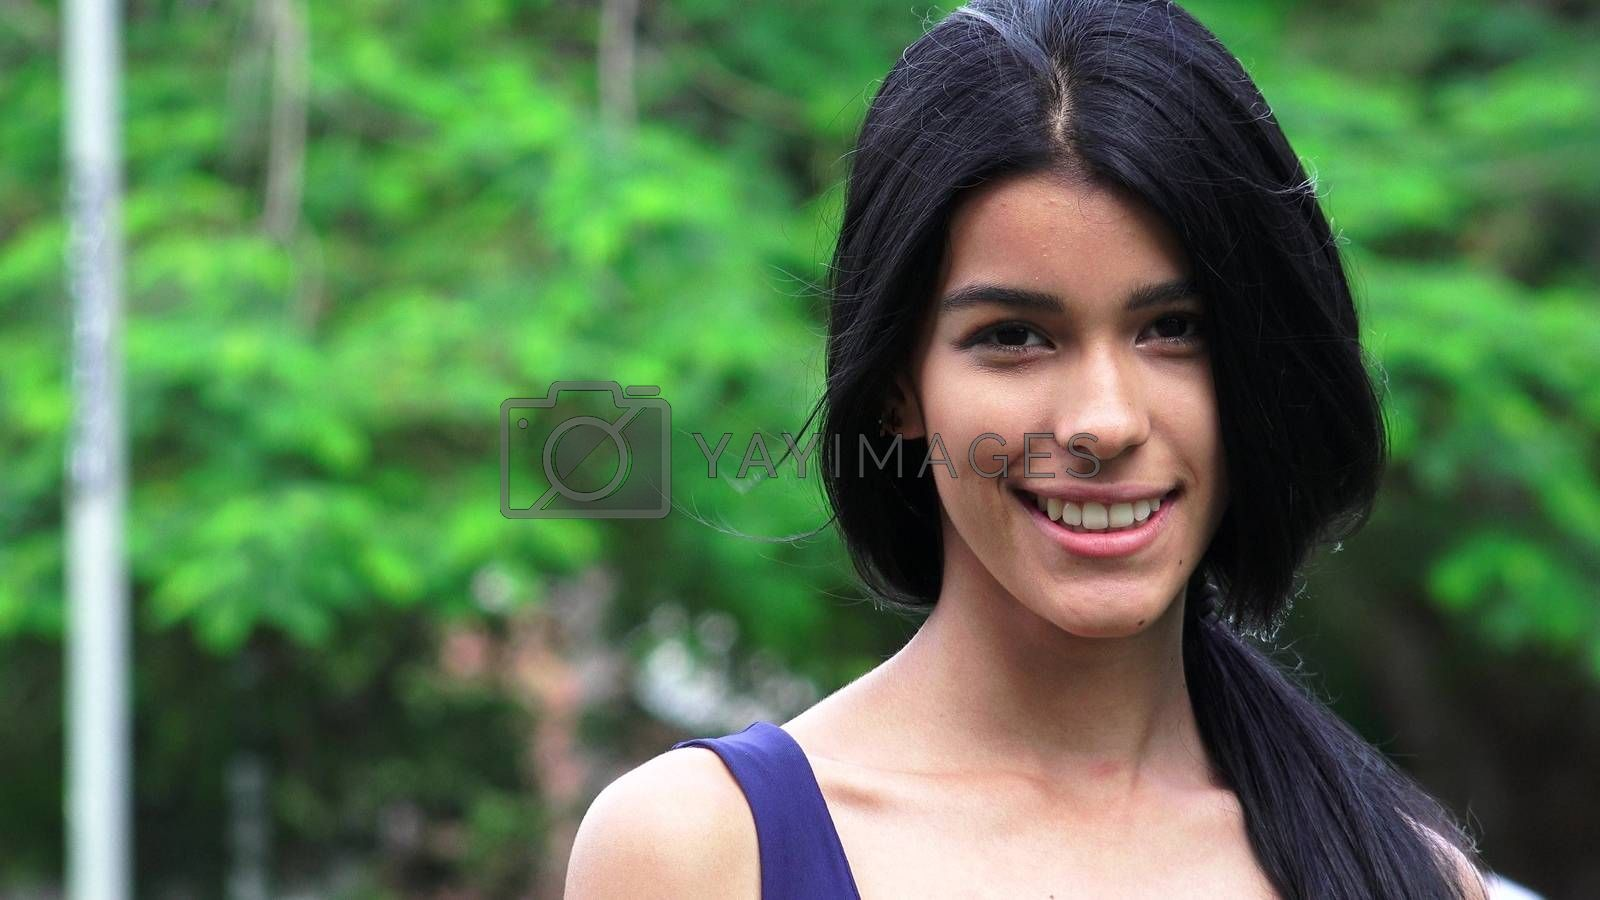 Colombian Female Teen And Happiness